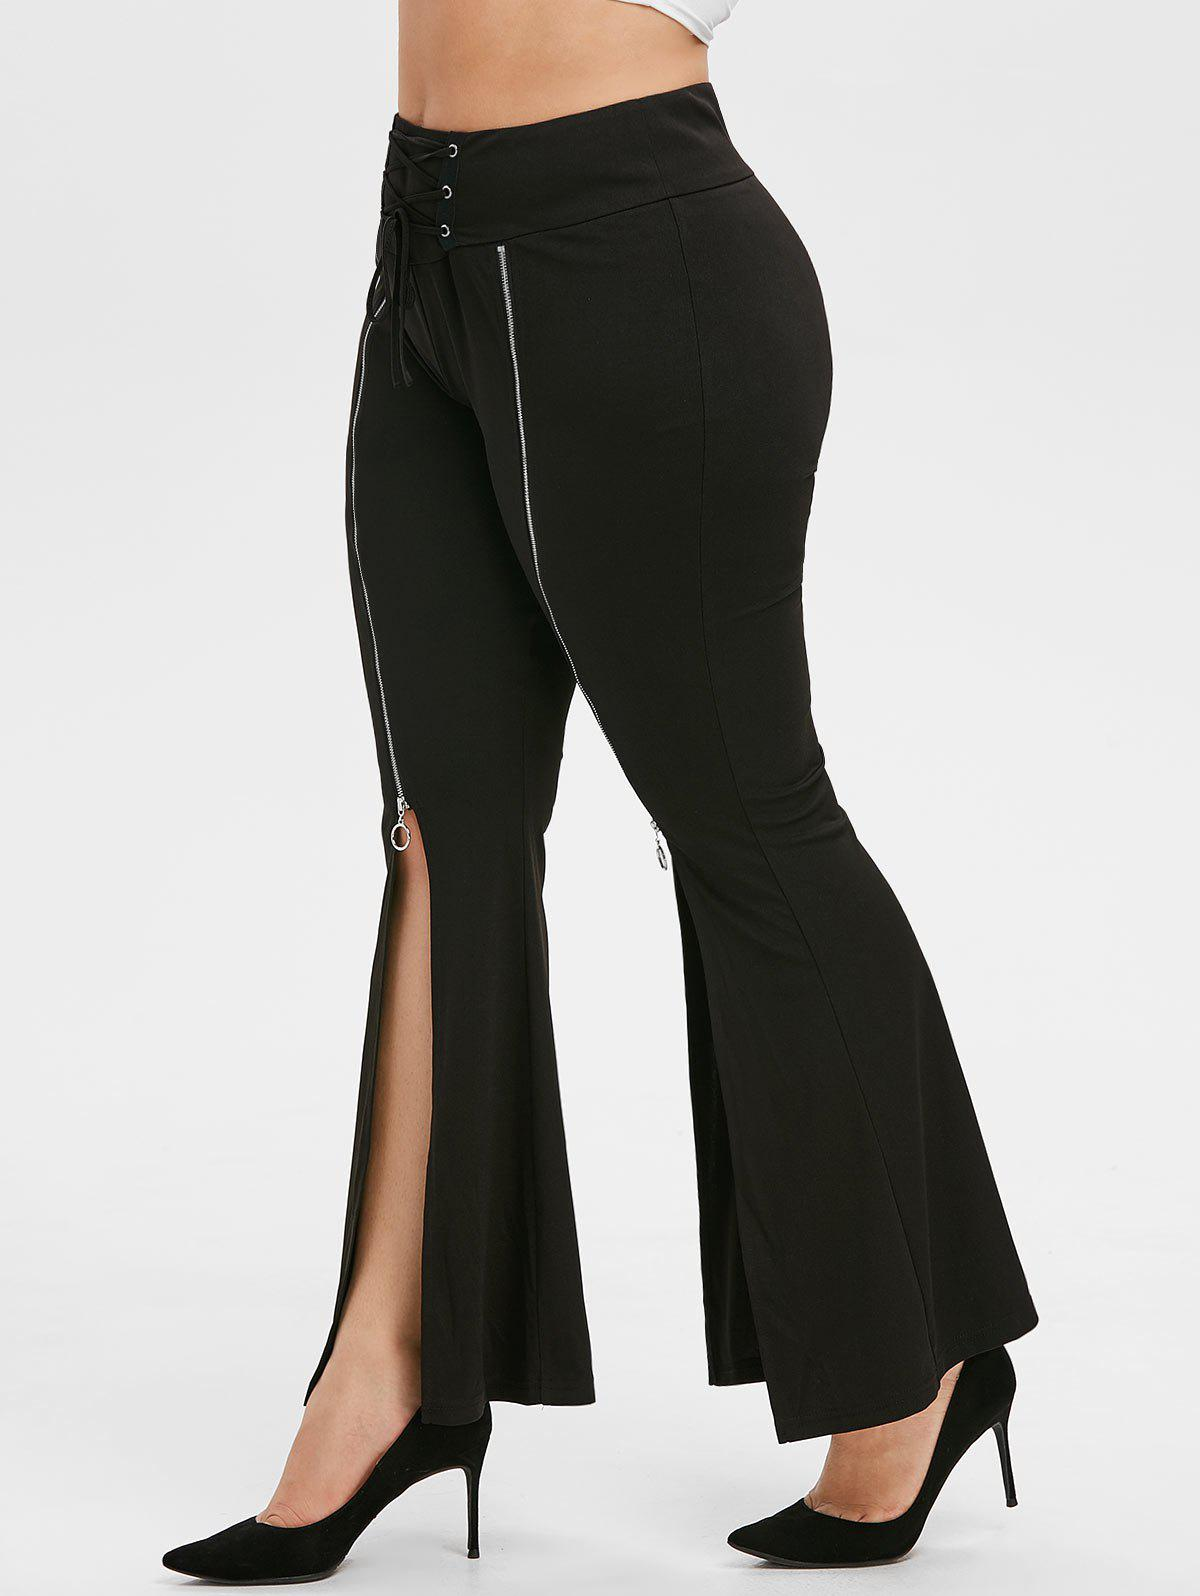 Plus Size Zipper Slit Front Lace-up Flare Pants - BLACK 2X